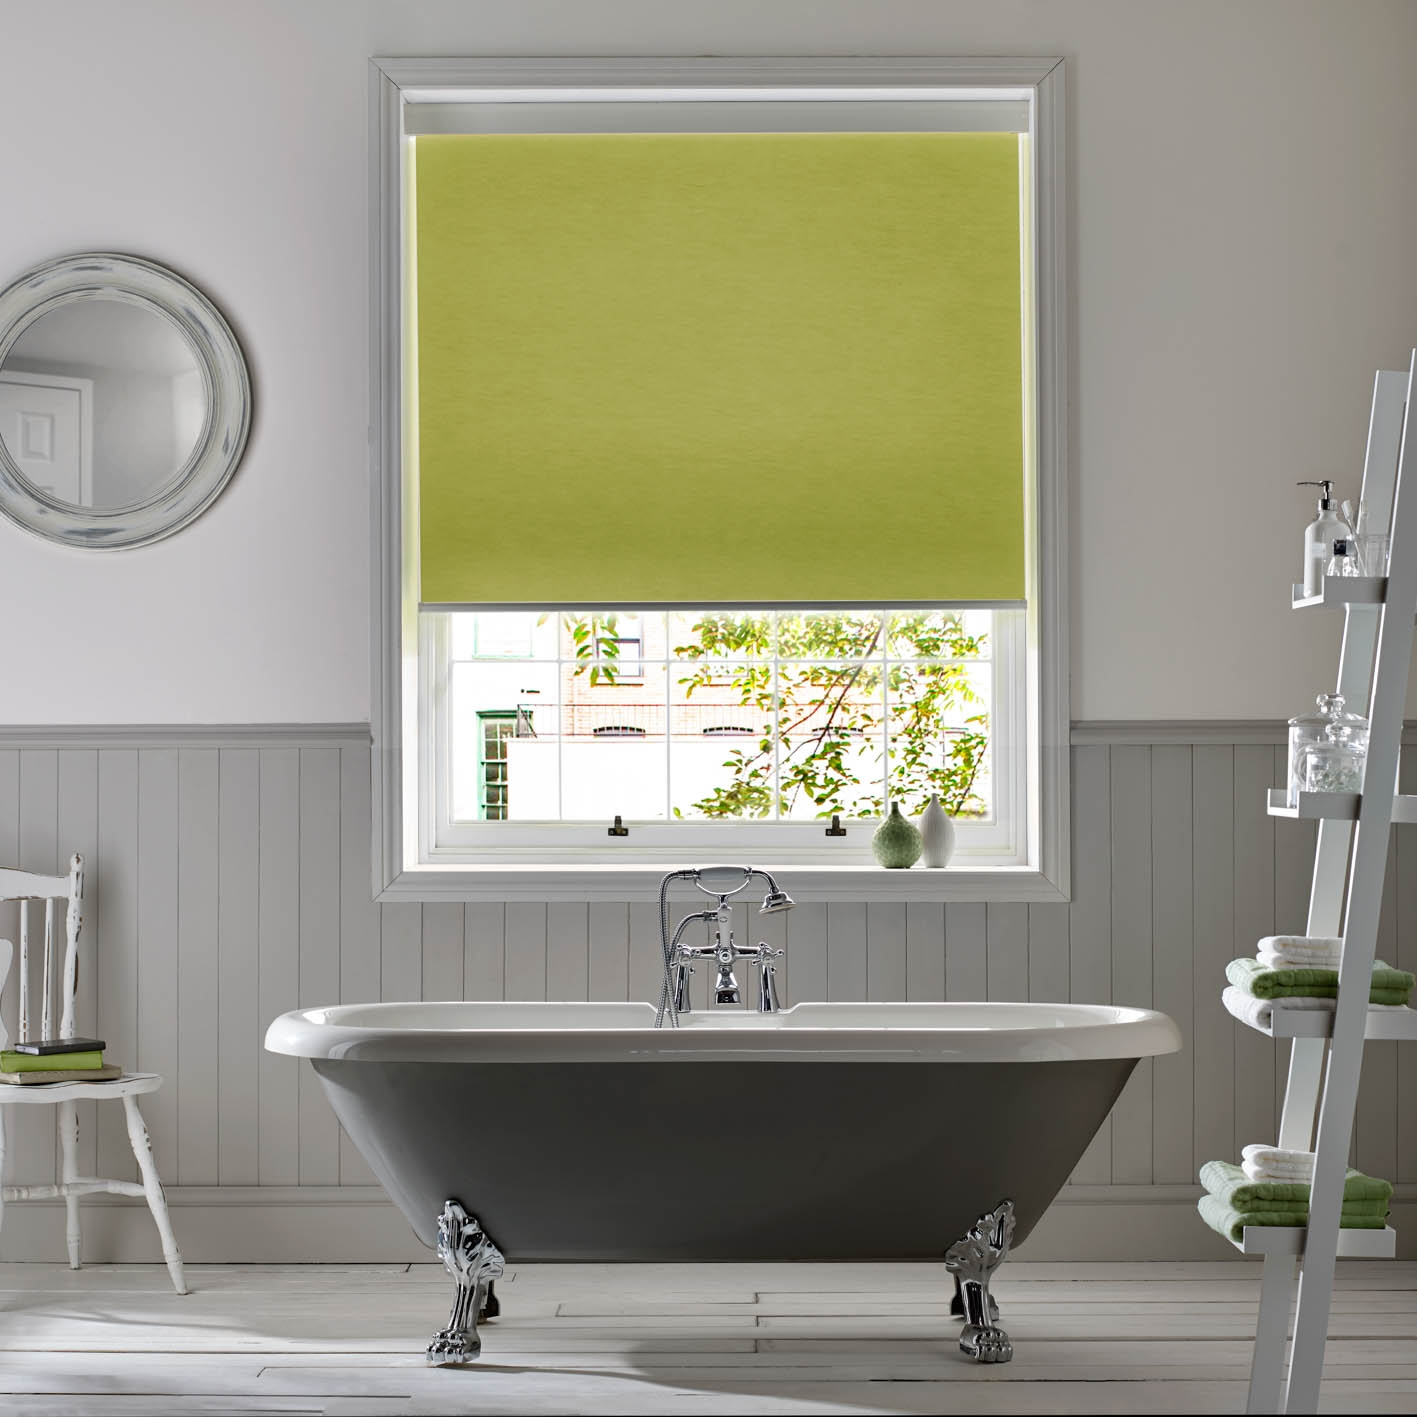 Roller Window Blinds With Ultra One Touch Control Appeal Home Pertaining To Bathroom Roman Blinds (Image 10 of 15)